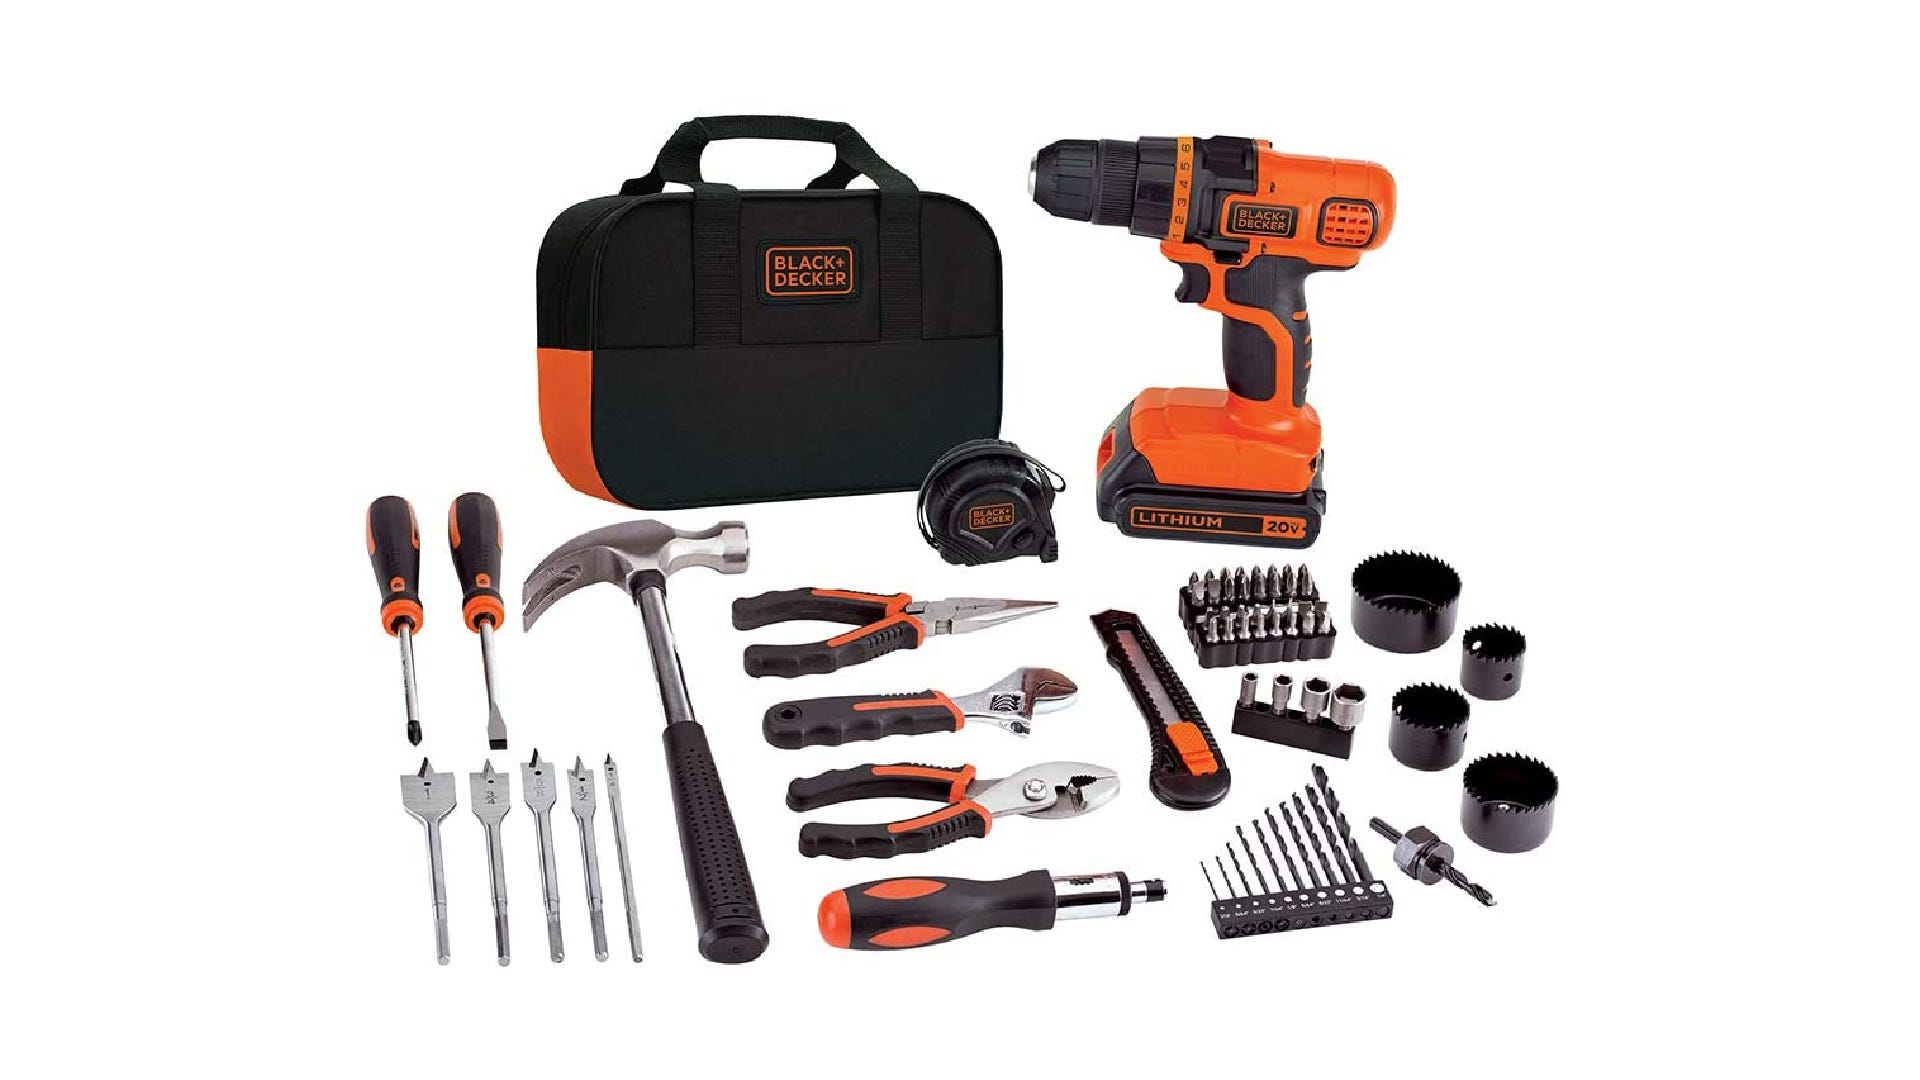 BLACK+DECKER 20V Max Drill + home tool kit including hammer, pliers, screwdrivers, and various bits and accessories